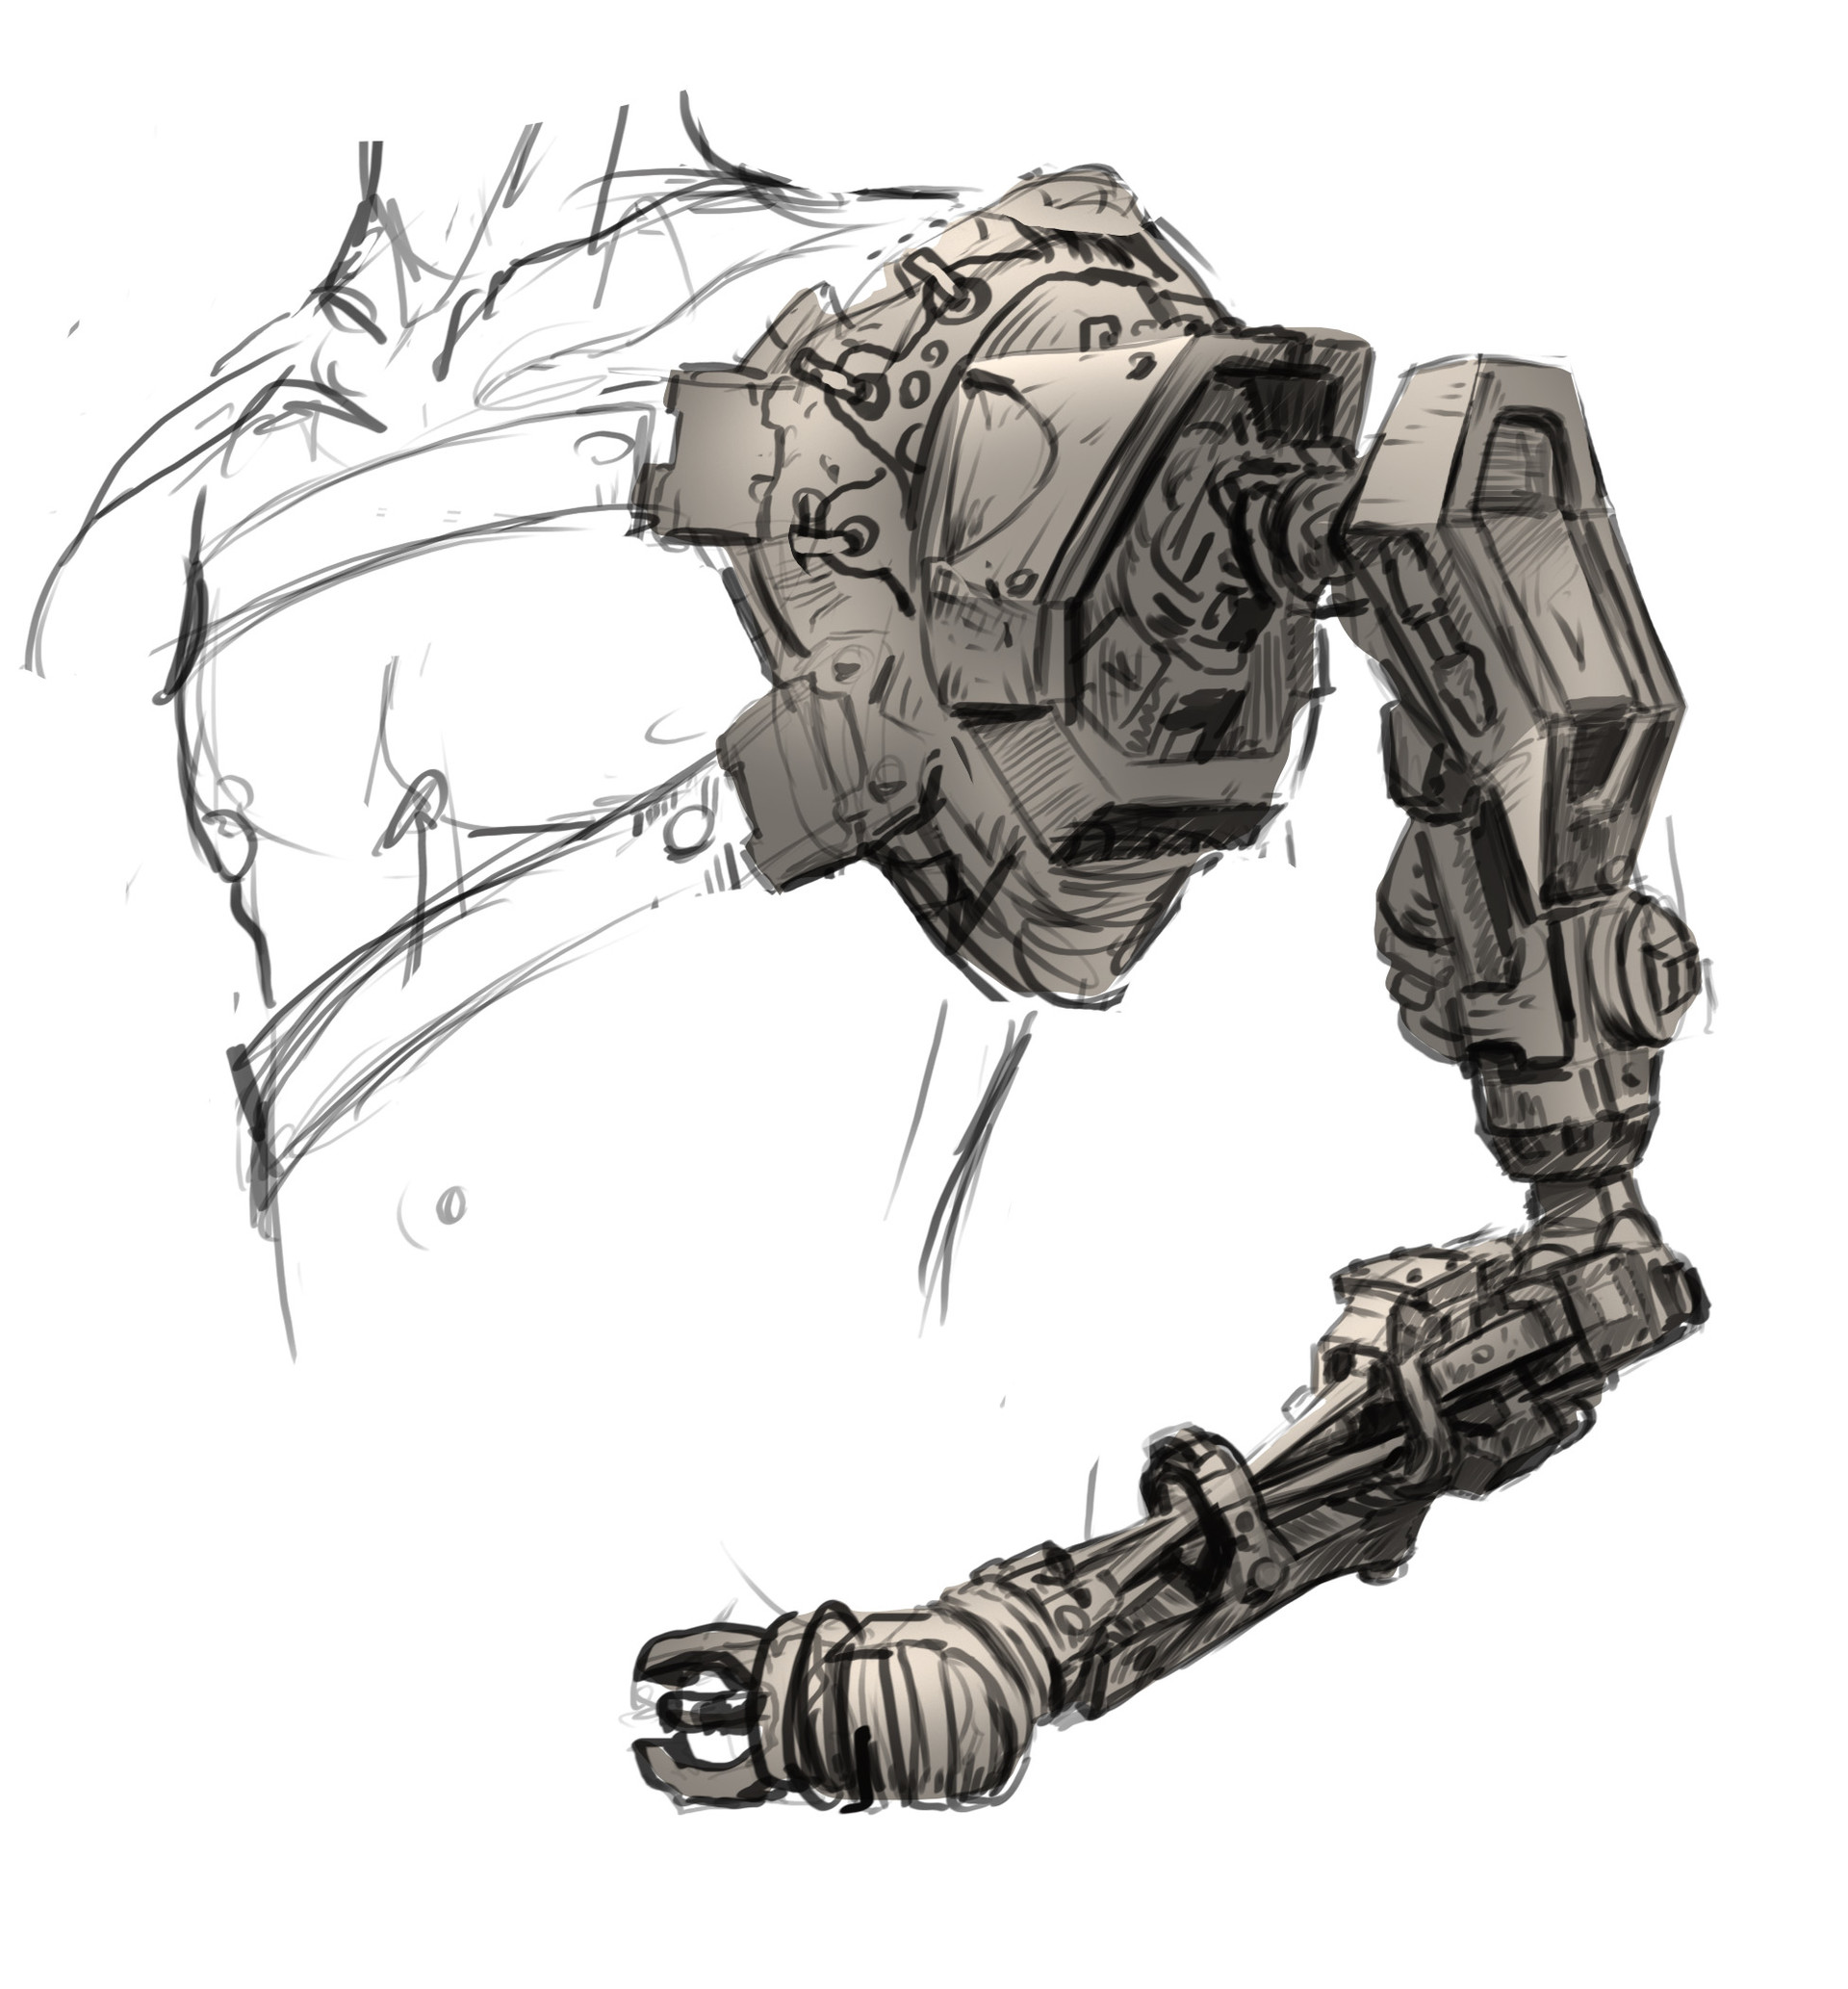 Early concept for his robotic arm